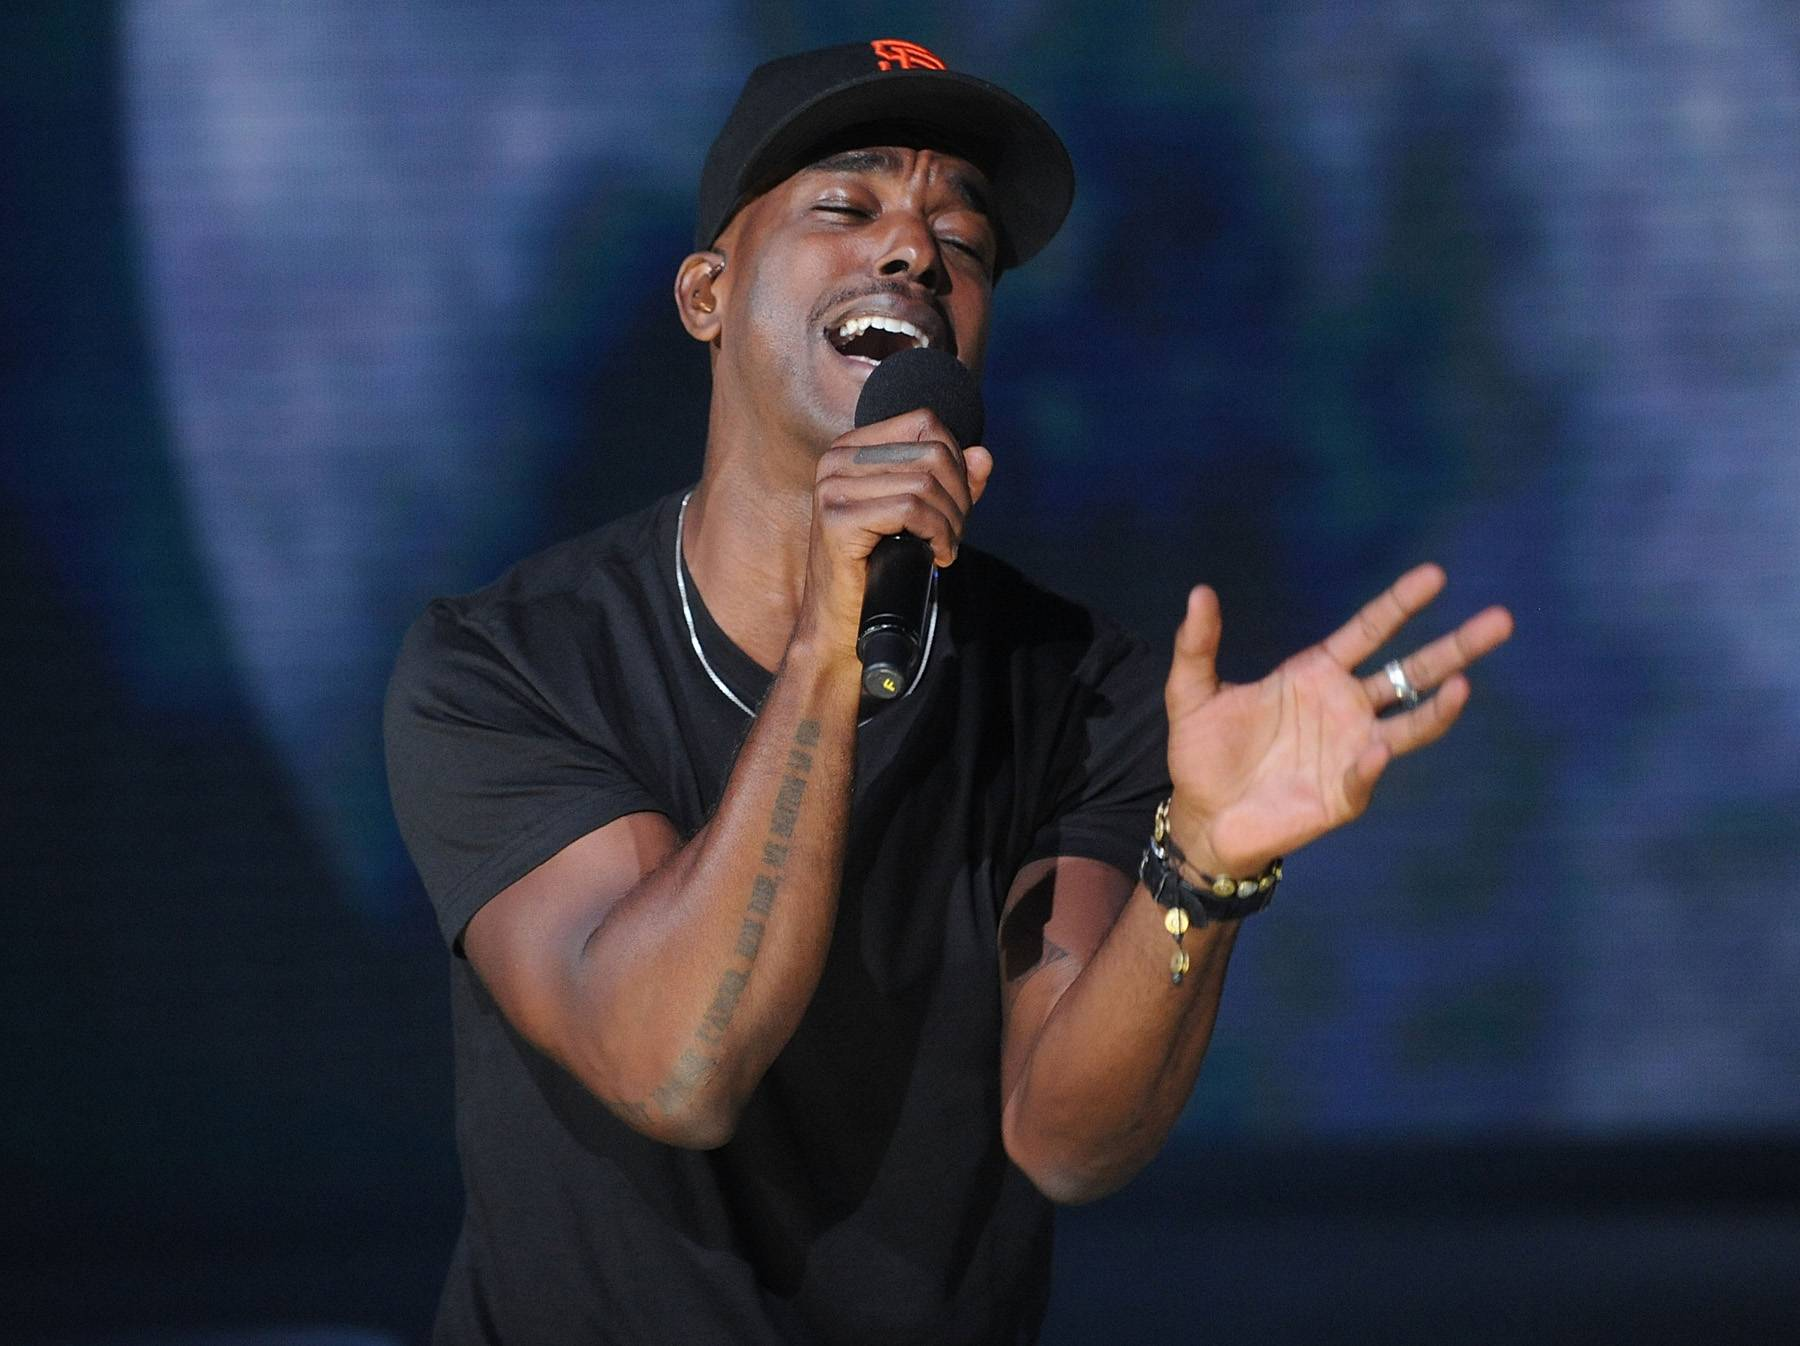 """Luke James Talks Leadership in the Industry - Luke Jameshas always been a pretty transparent artist, sharing his feelings on both the highs and lows along his ride to stardom. In a new series called Game Changers, Luke sat with Vibe to talk fears and the leaders in his life. During the insightful clip, Luke shared his thoughts onBeyonc?as a leader. """"She's proven herself time after time from her first solo album. When the label said she had no hit and she had five."""" Check out some of Luke's other role modelshere.(Photo: Brad Barket/BET/Getty Images for BET)"""